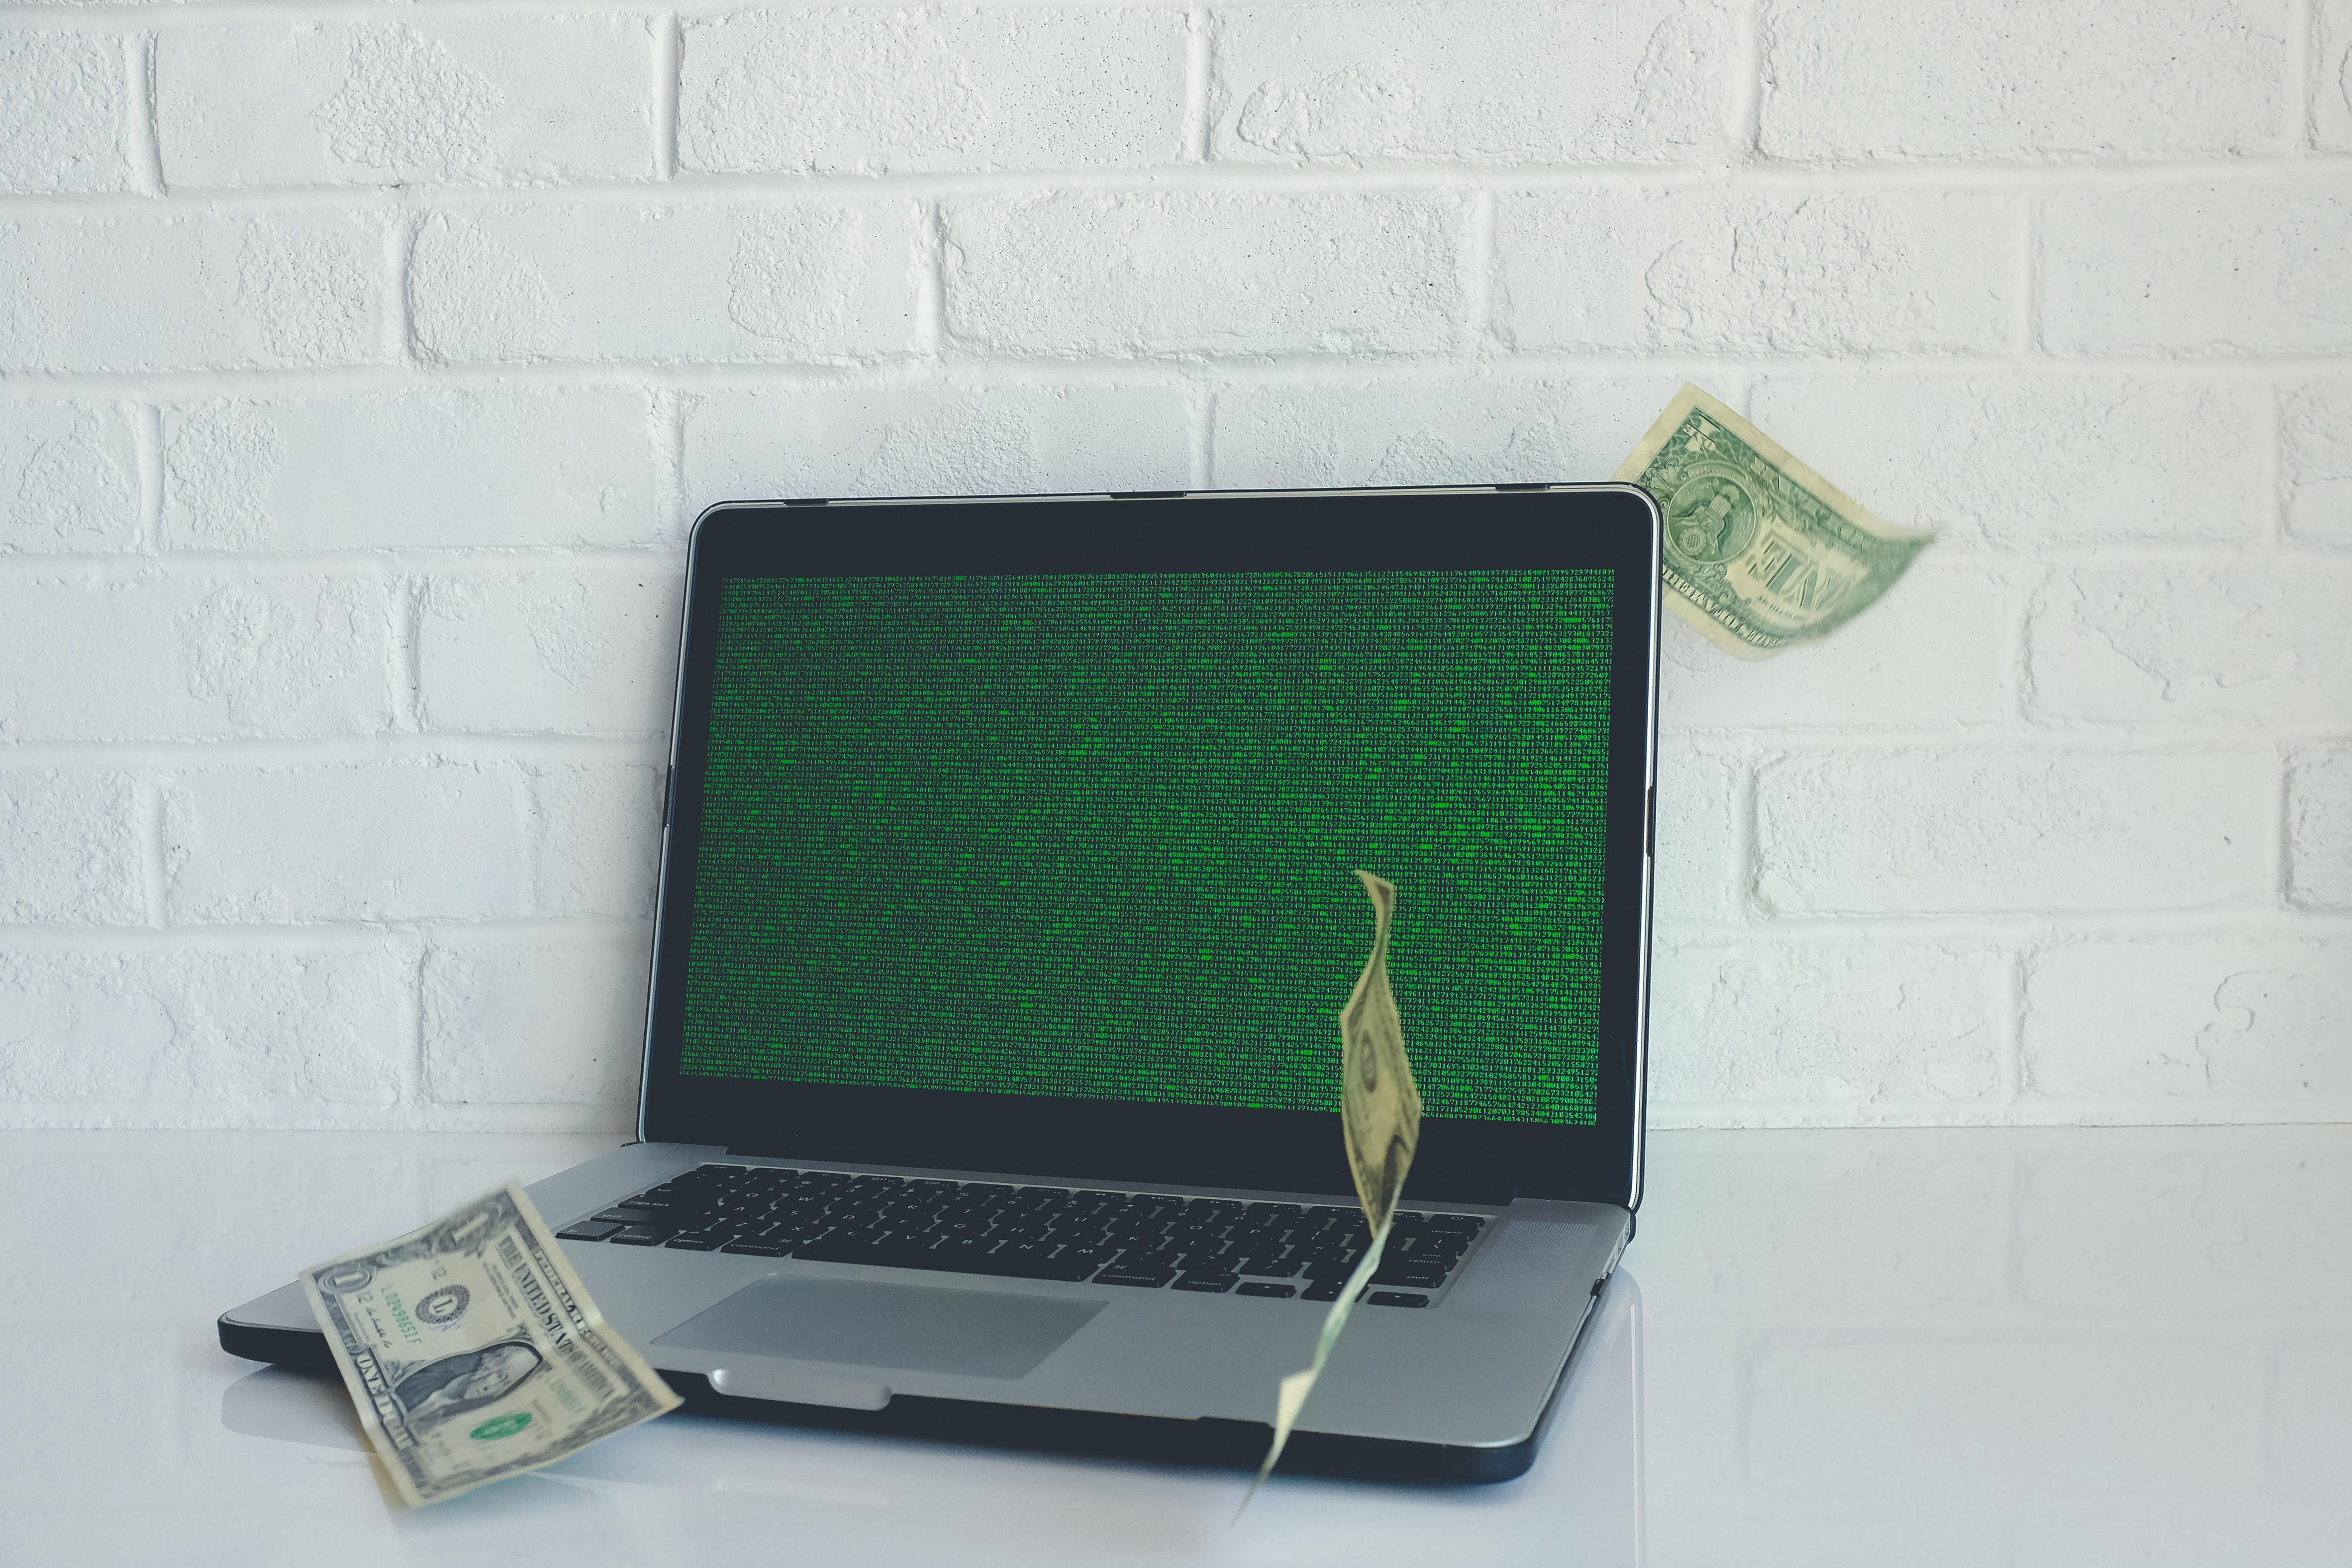 Laptop with green screen and money falling from above; image by NeONBRAND, via unsplash.com.